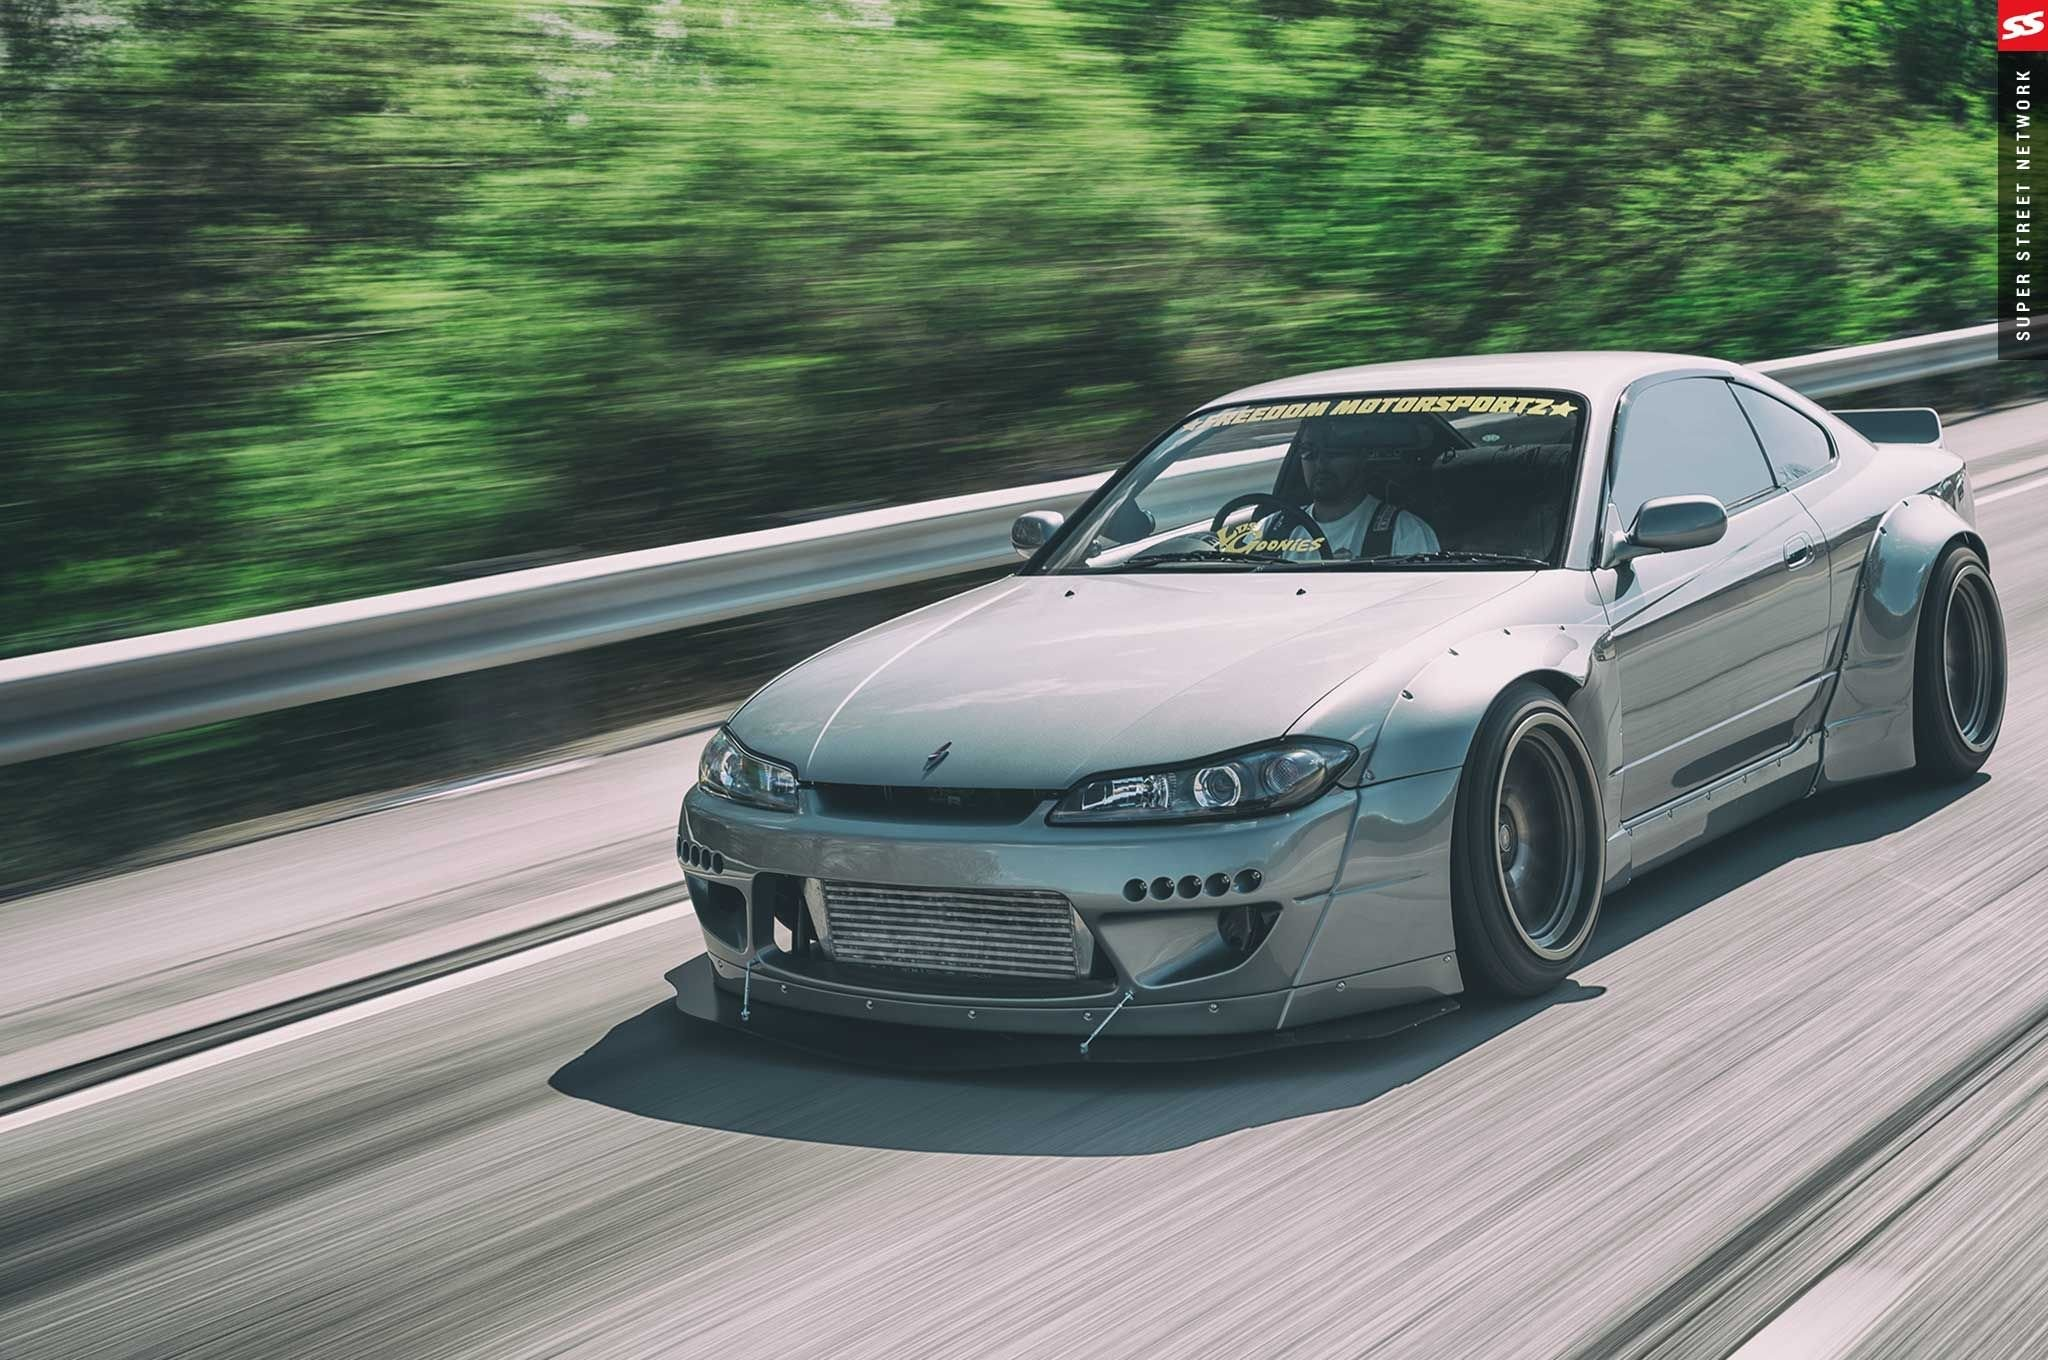 2048x1360 Rocket Bunny Nissan Silvia S15 cars coupe bodykit modified wallpaper |   | 886905 | WallpaperUP